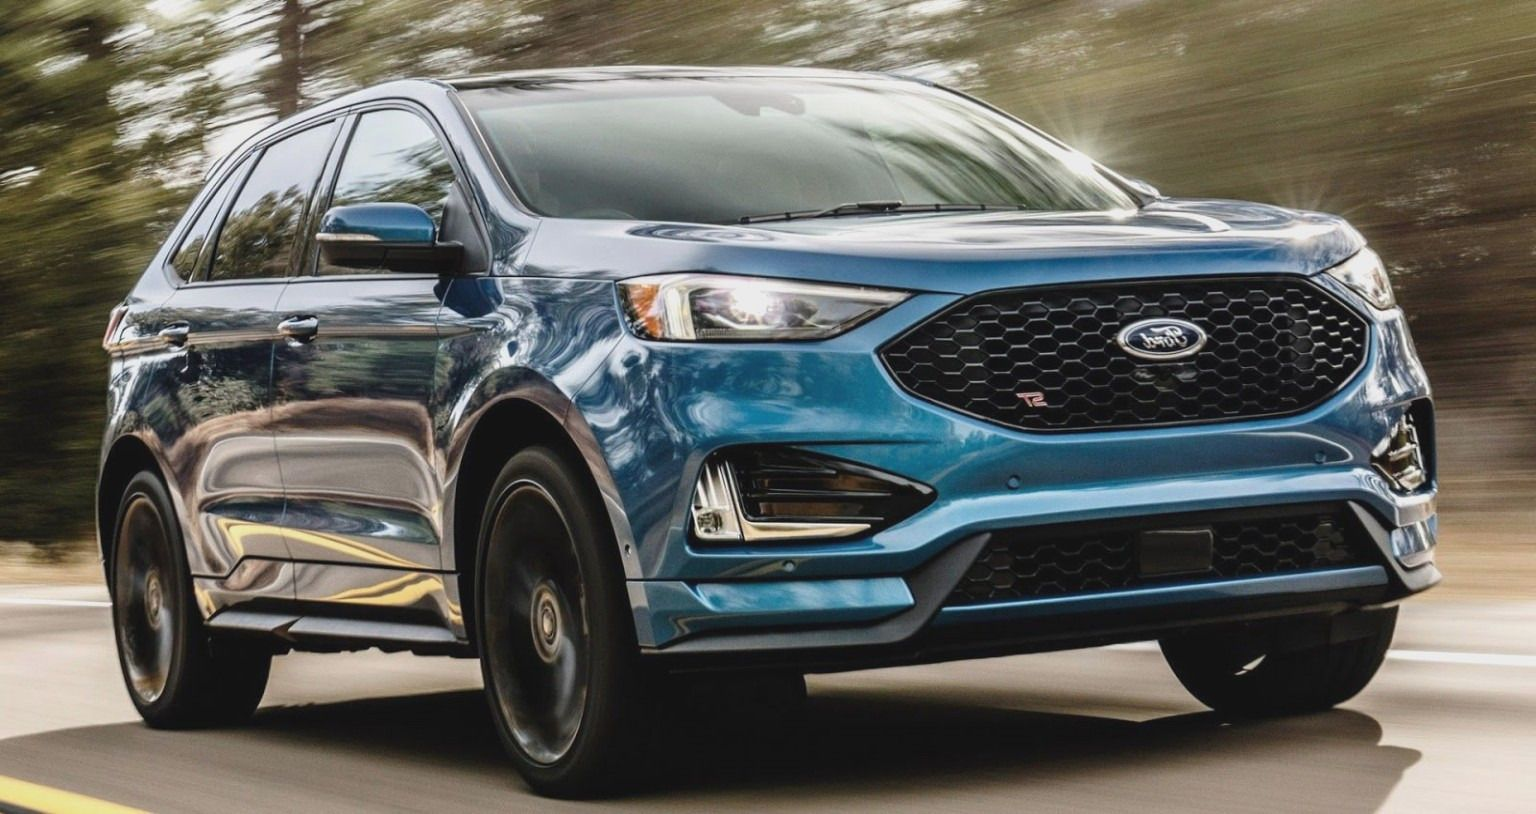 Ford Suv 2017 Jaguar Ford Stunning 2019 Ford Edge Ford Edge 2019